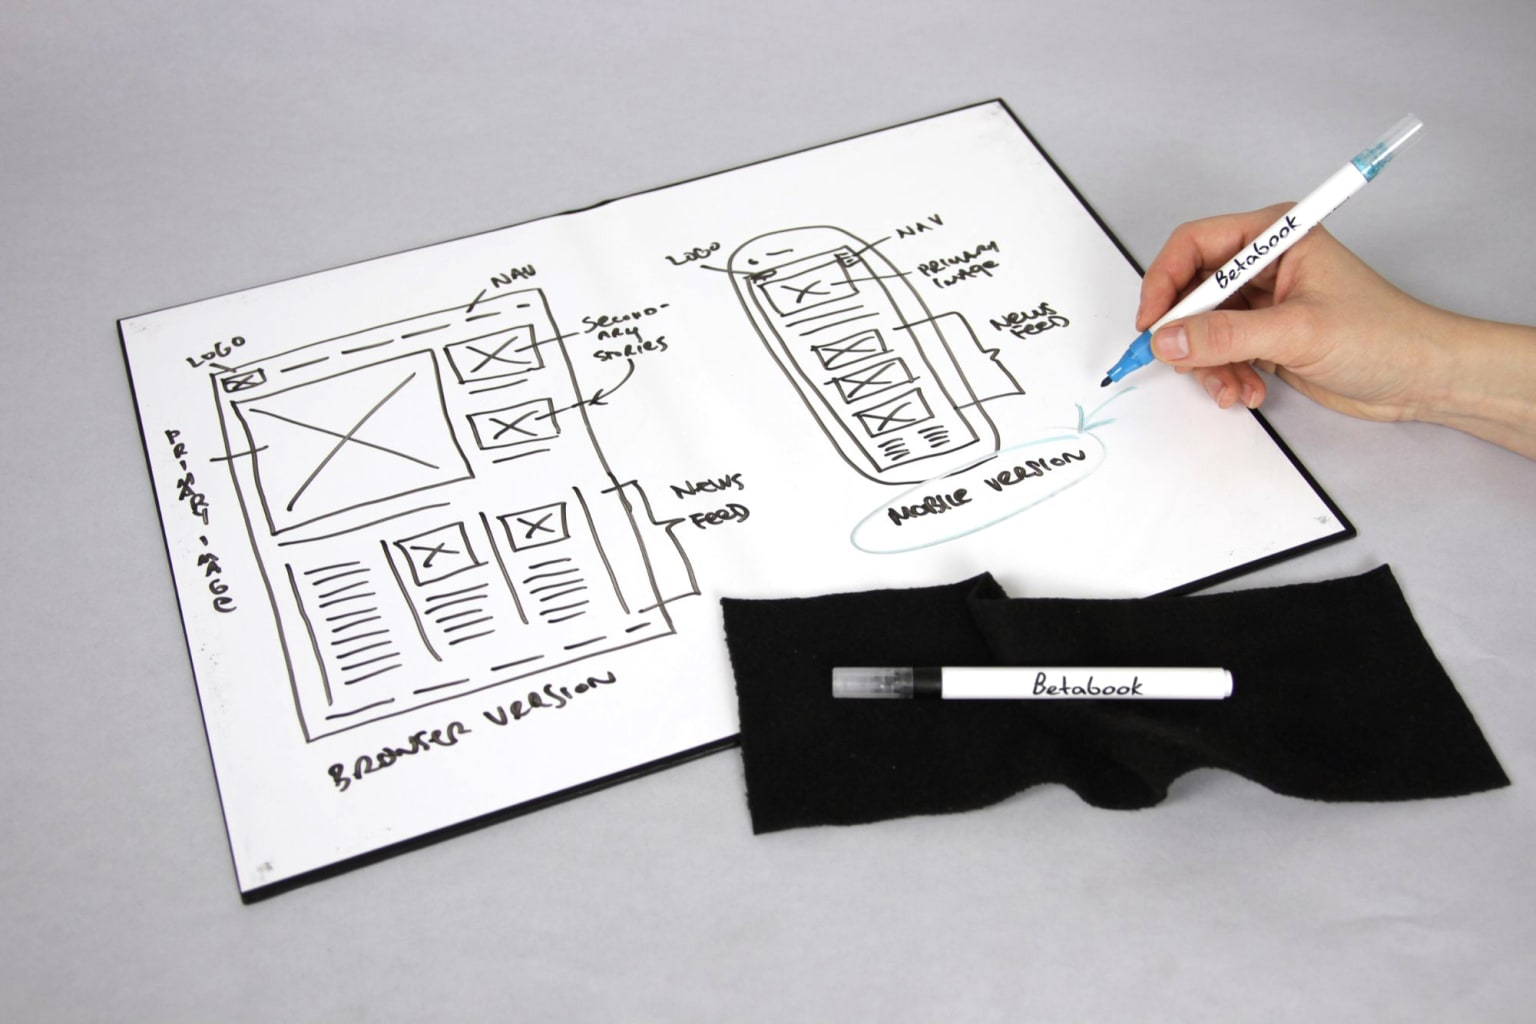 Betabook -- the portable Whiteboard